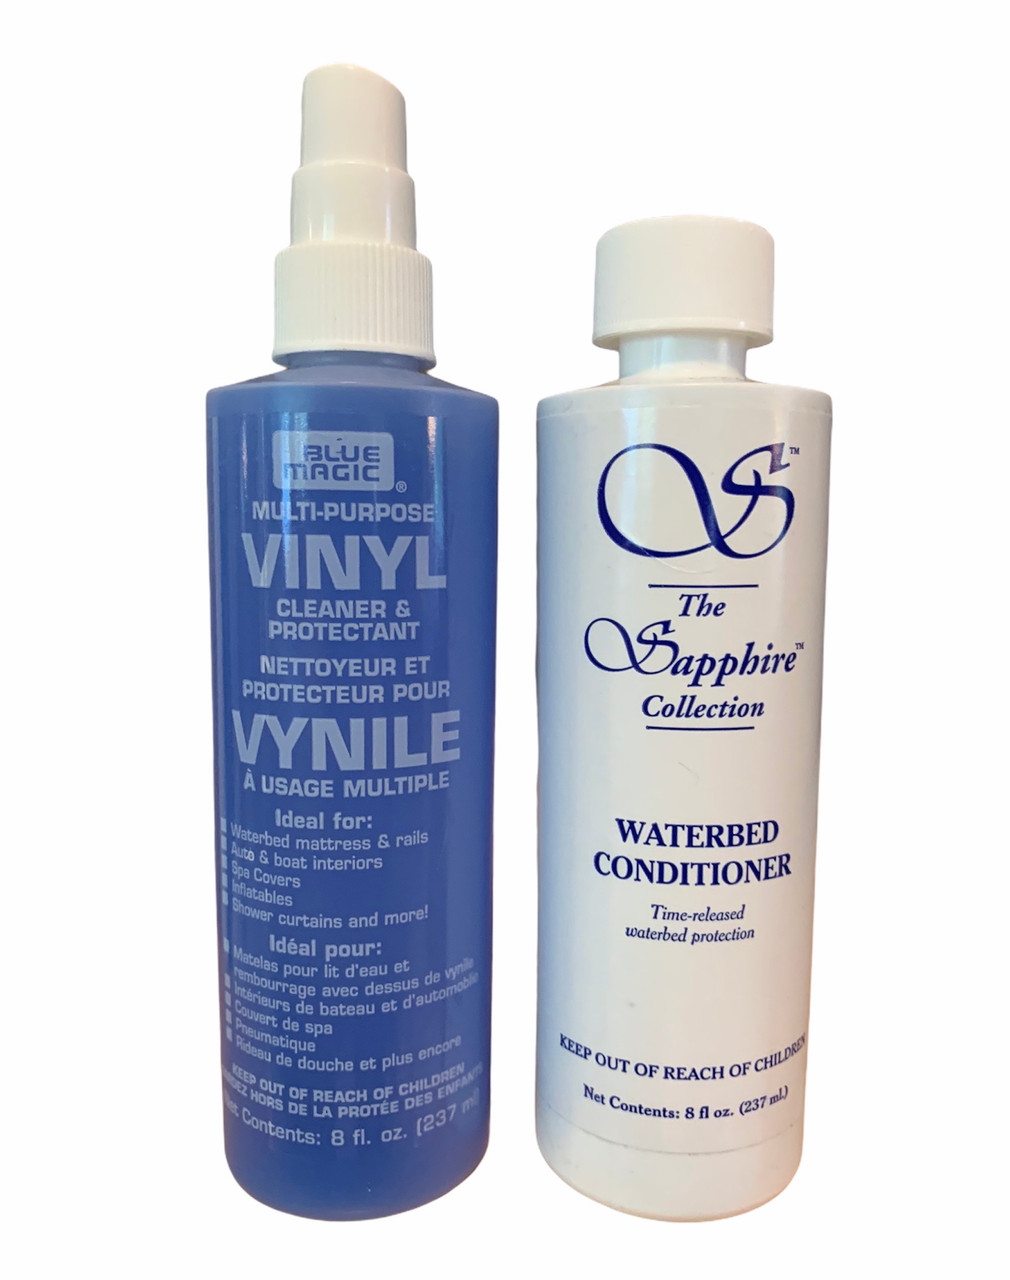 Waterbed Conditioning Solution and Vinyl Cleaner   Keep your waterbed water in excellent condition and avoid smells and foam with these chemicals